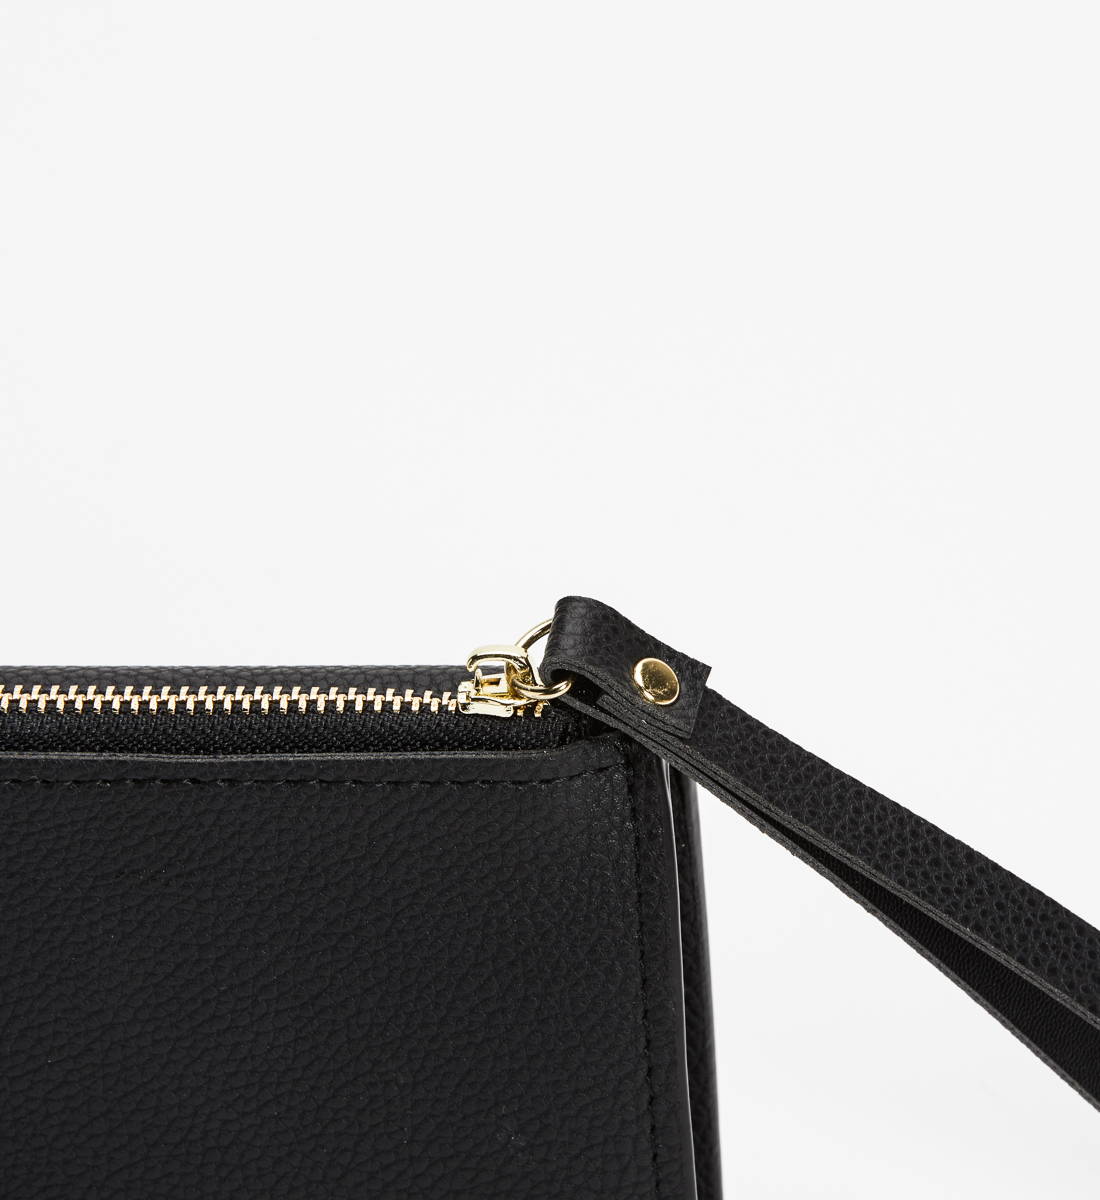 Small Flap Wristlet Wallet,Black Side